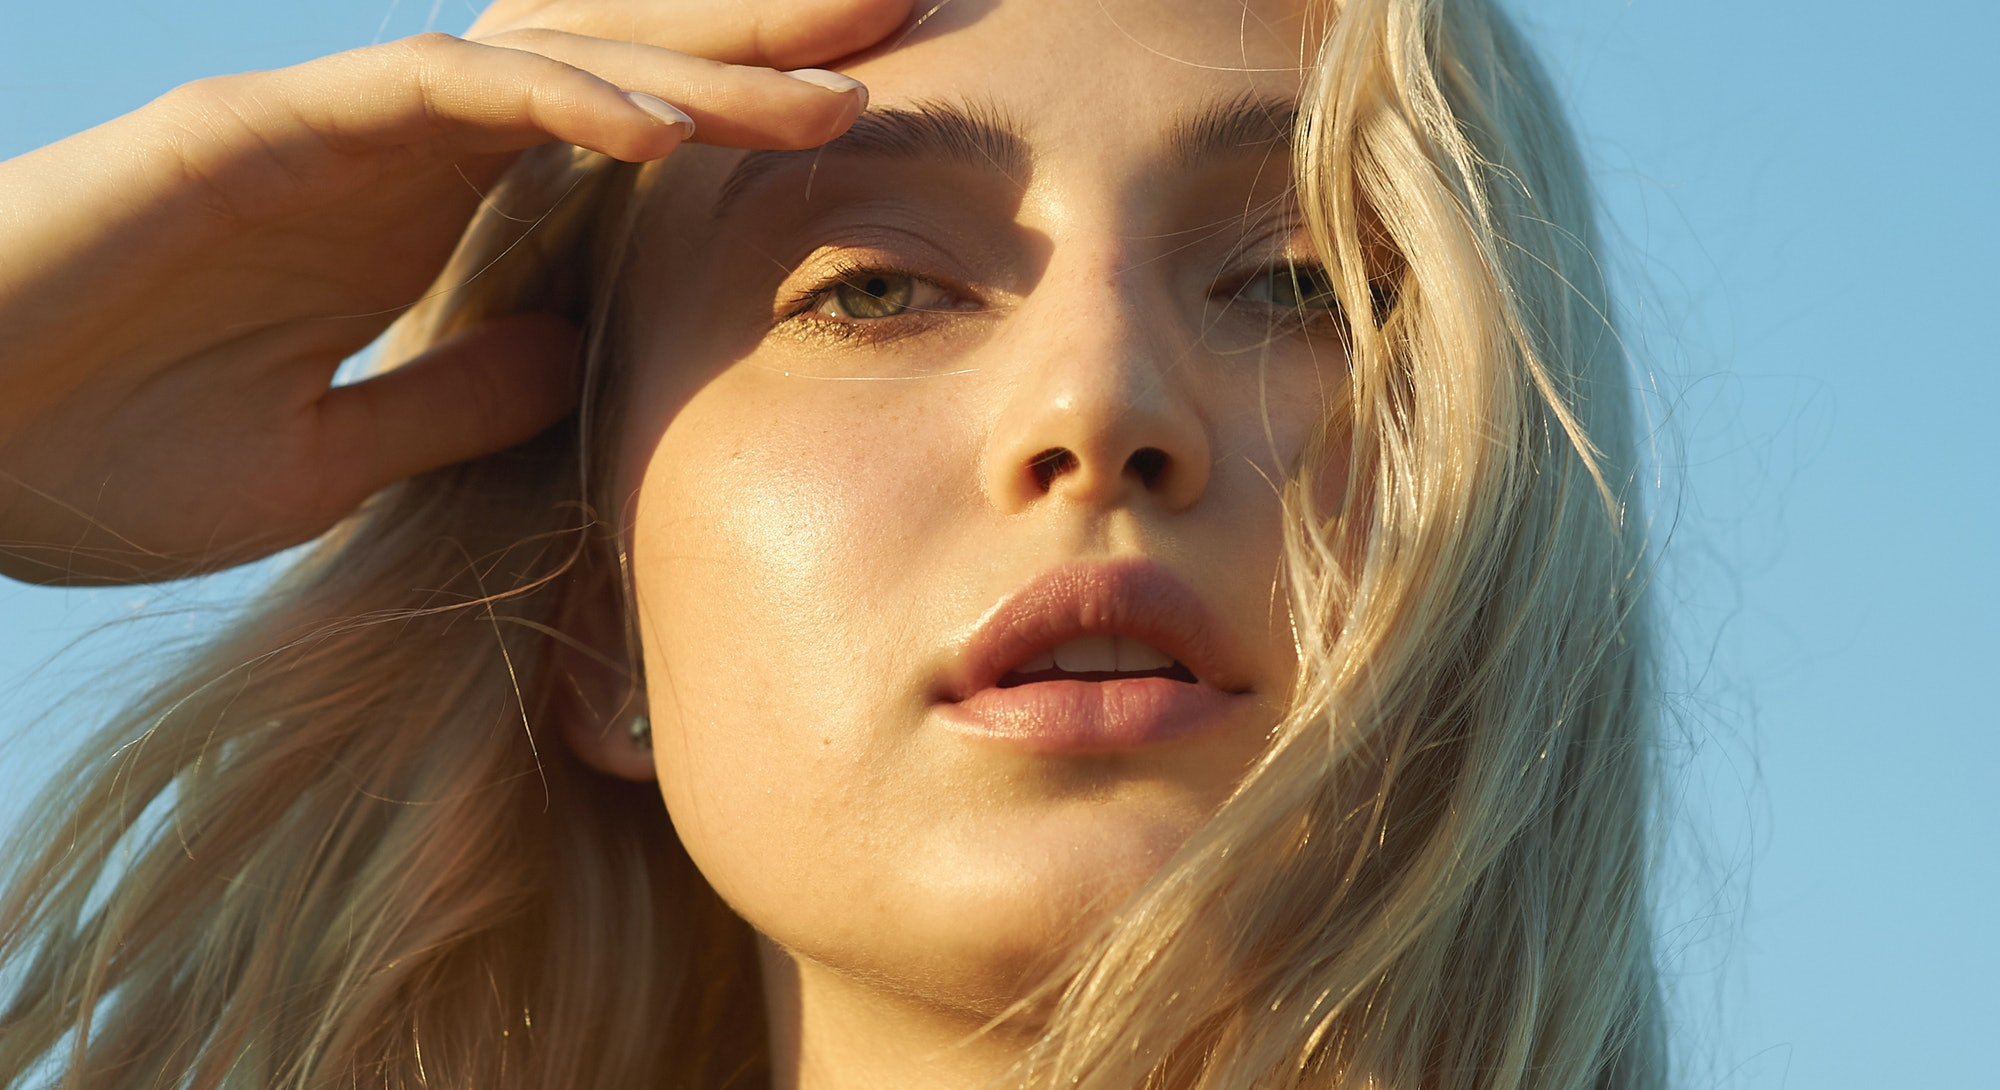 Gorgeous young woman in white romantic clothes on blue sky background. Sunny day. Blonde model with big beautiful eyes and nice lips. Calm and balance. Fashionable look. Beauty portrait. Headshot